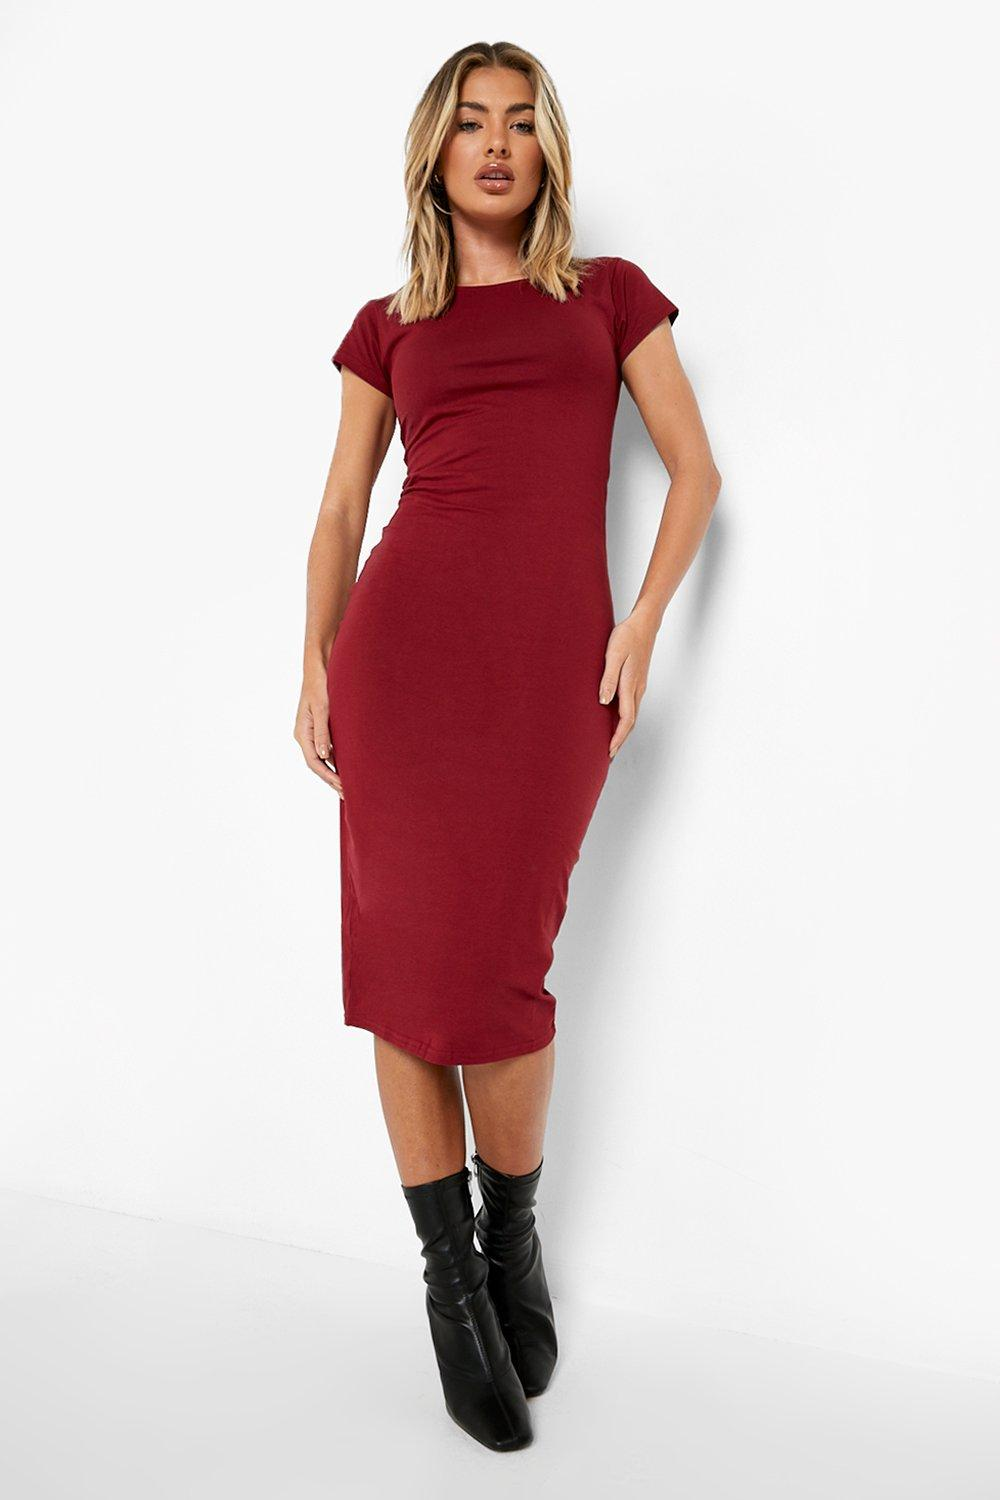 474b16d483 Details about Boohoo Womens Cap Sleeve Jersey Bodycon Midi Dress